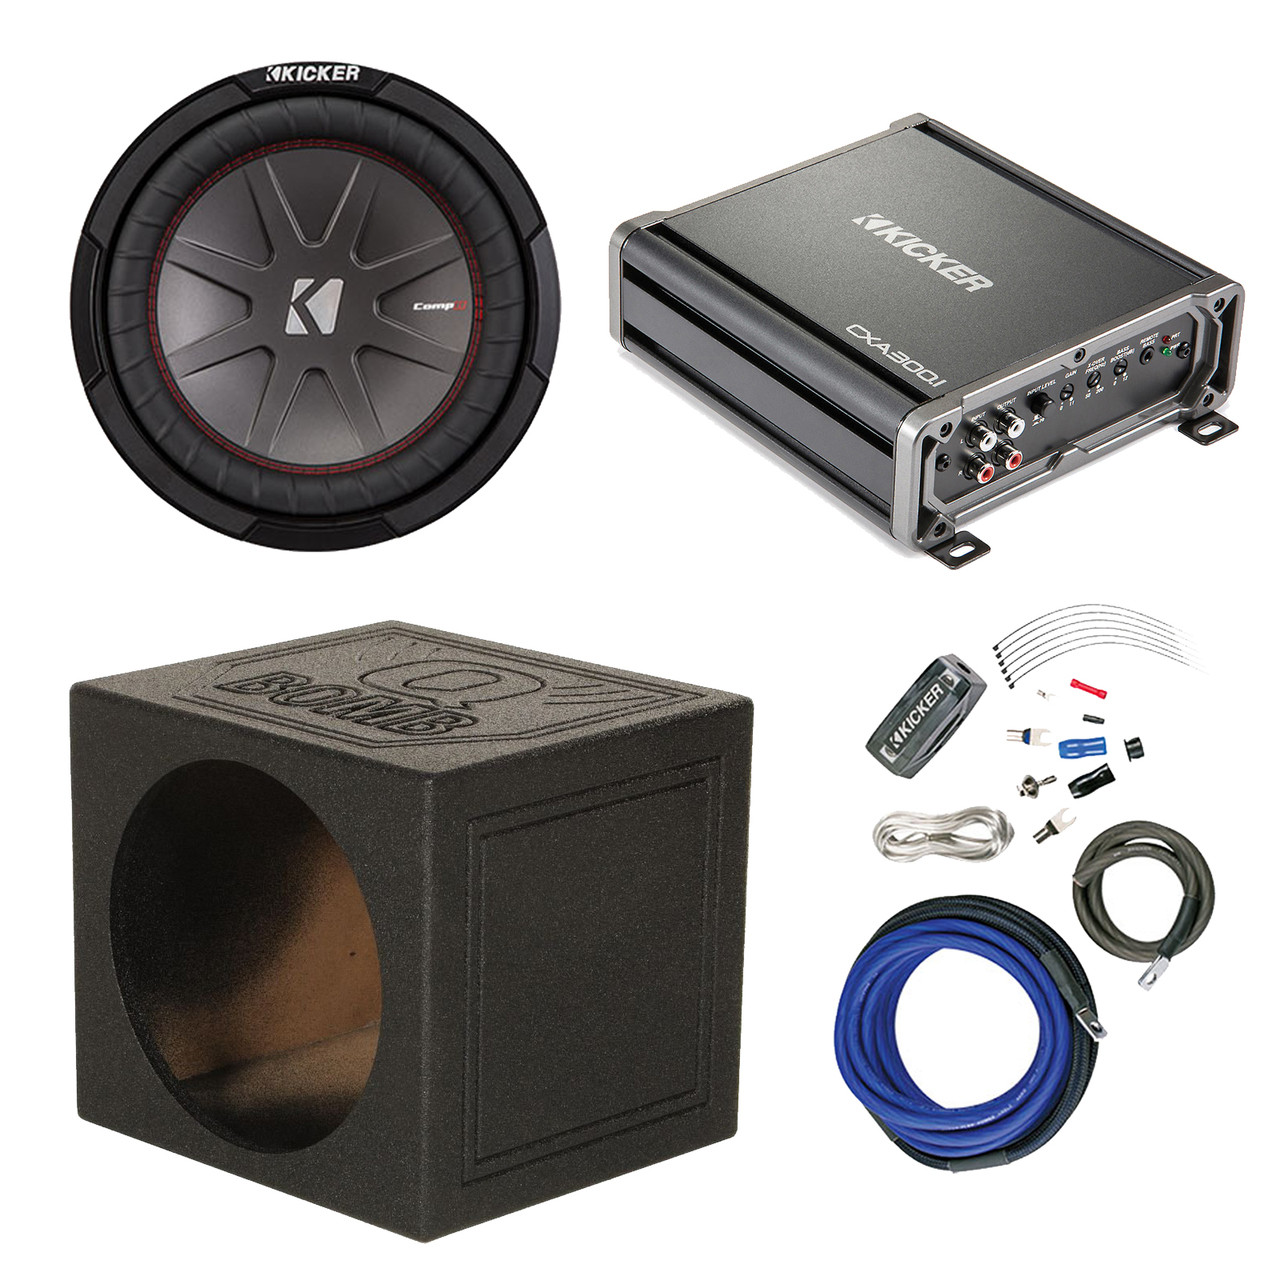 Peachy Kicker 10 Subwoofers 600Watt Amp Qpower 10 Ported Sub Box Amp Wiring Cloud Hisonuggs Outletorg